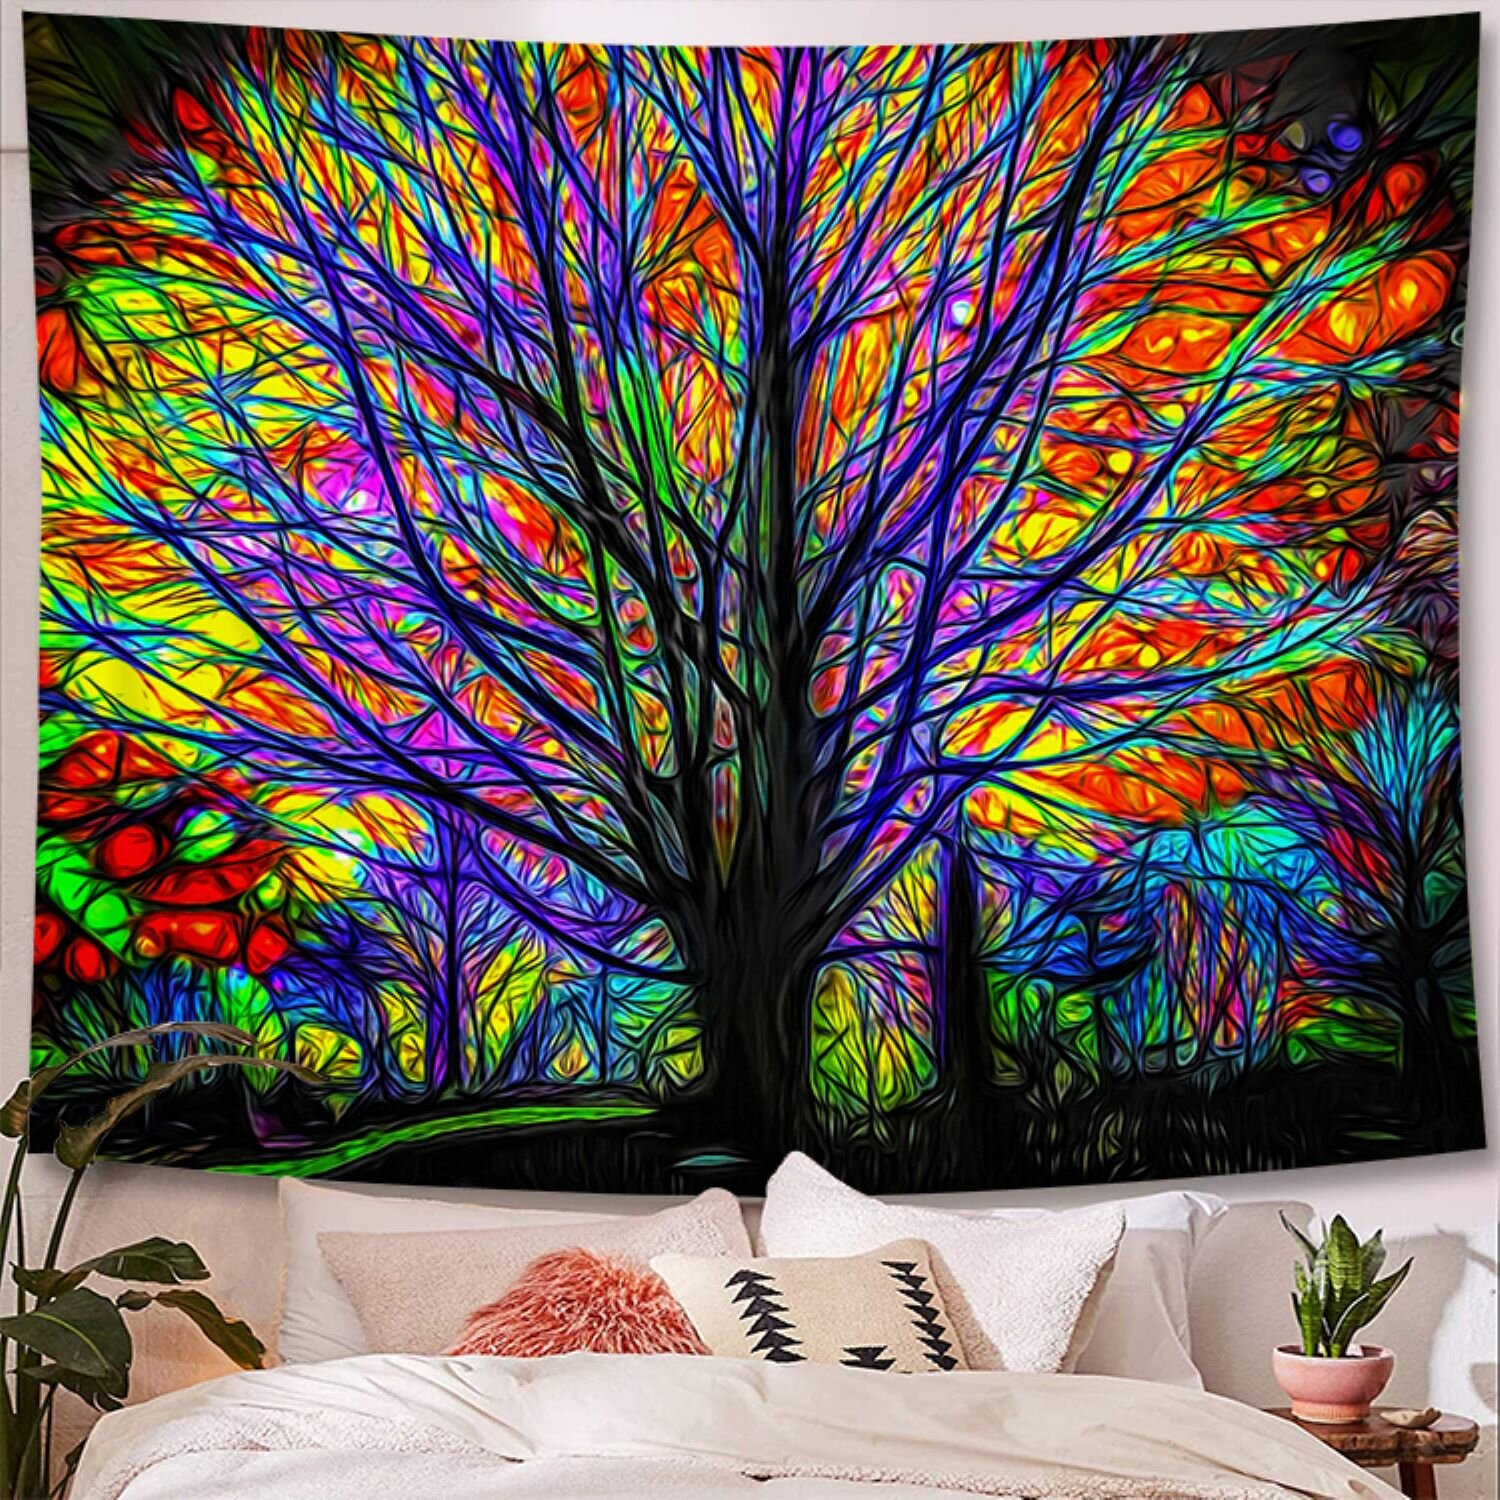 Rainbow Tree Polyester Tapestry With Hanging Accessories Included For Latest Blended Fabric Salty But Sweet Wall Hangings (View 8 of 20)